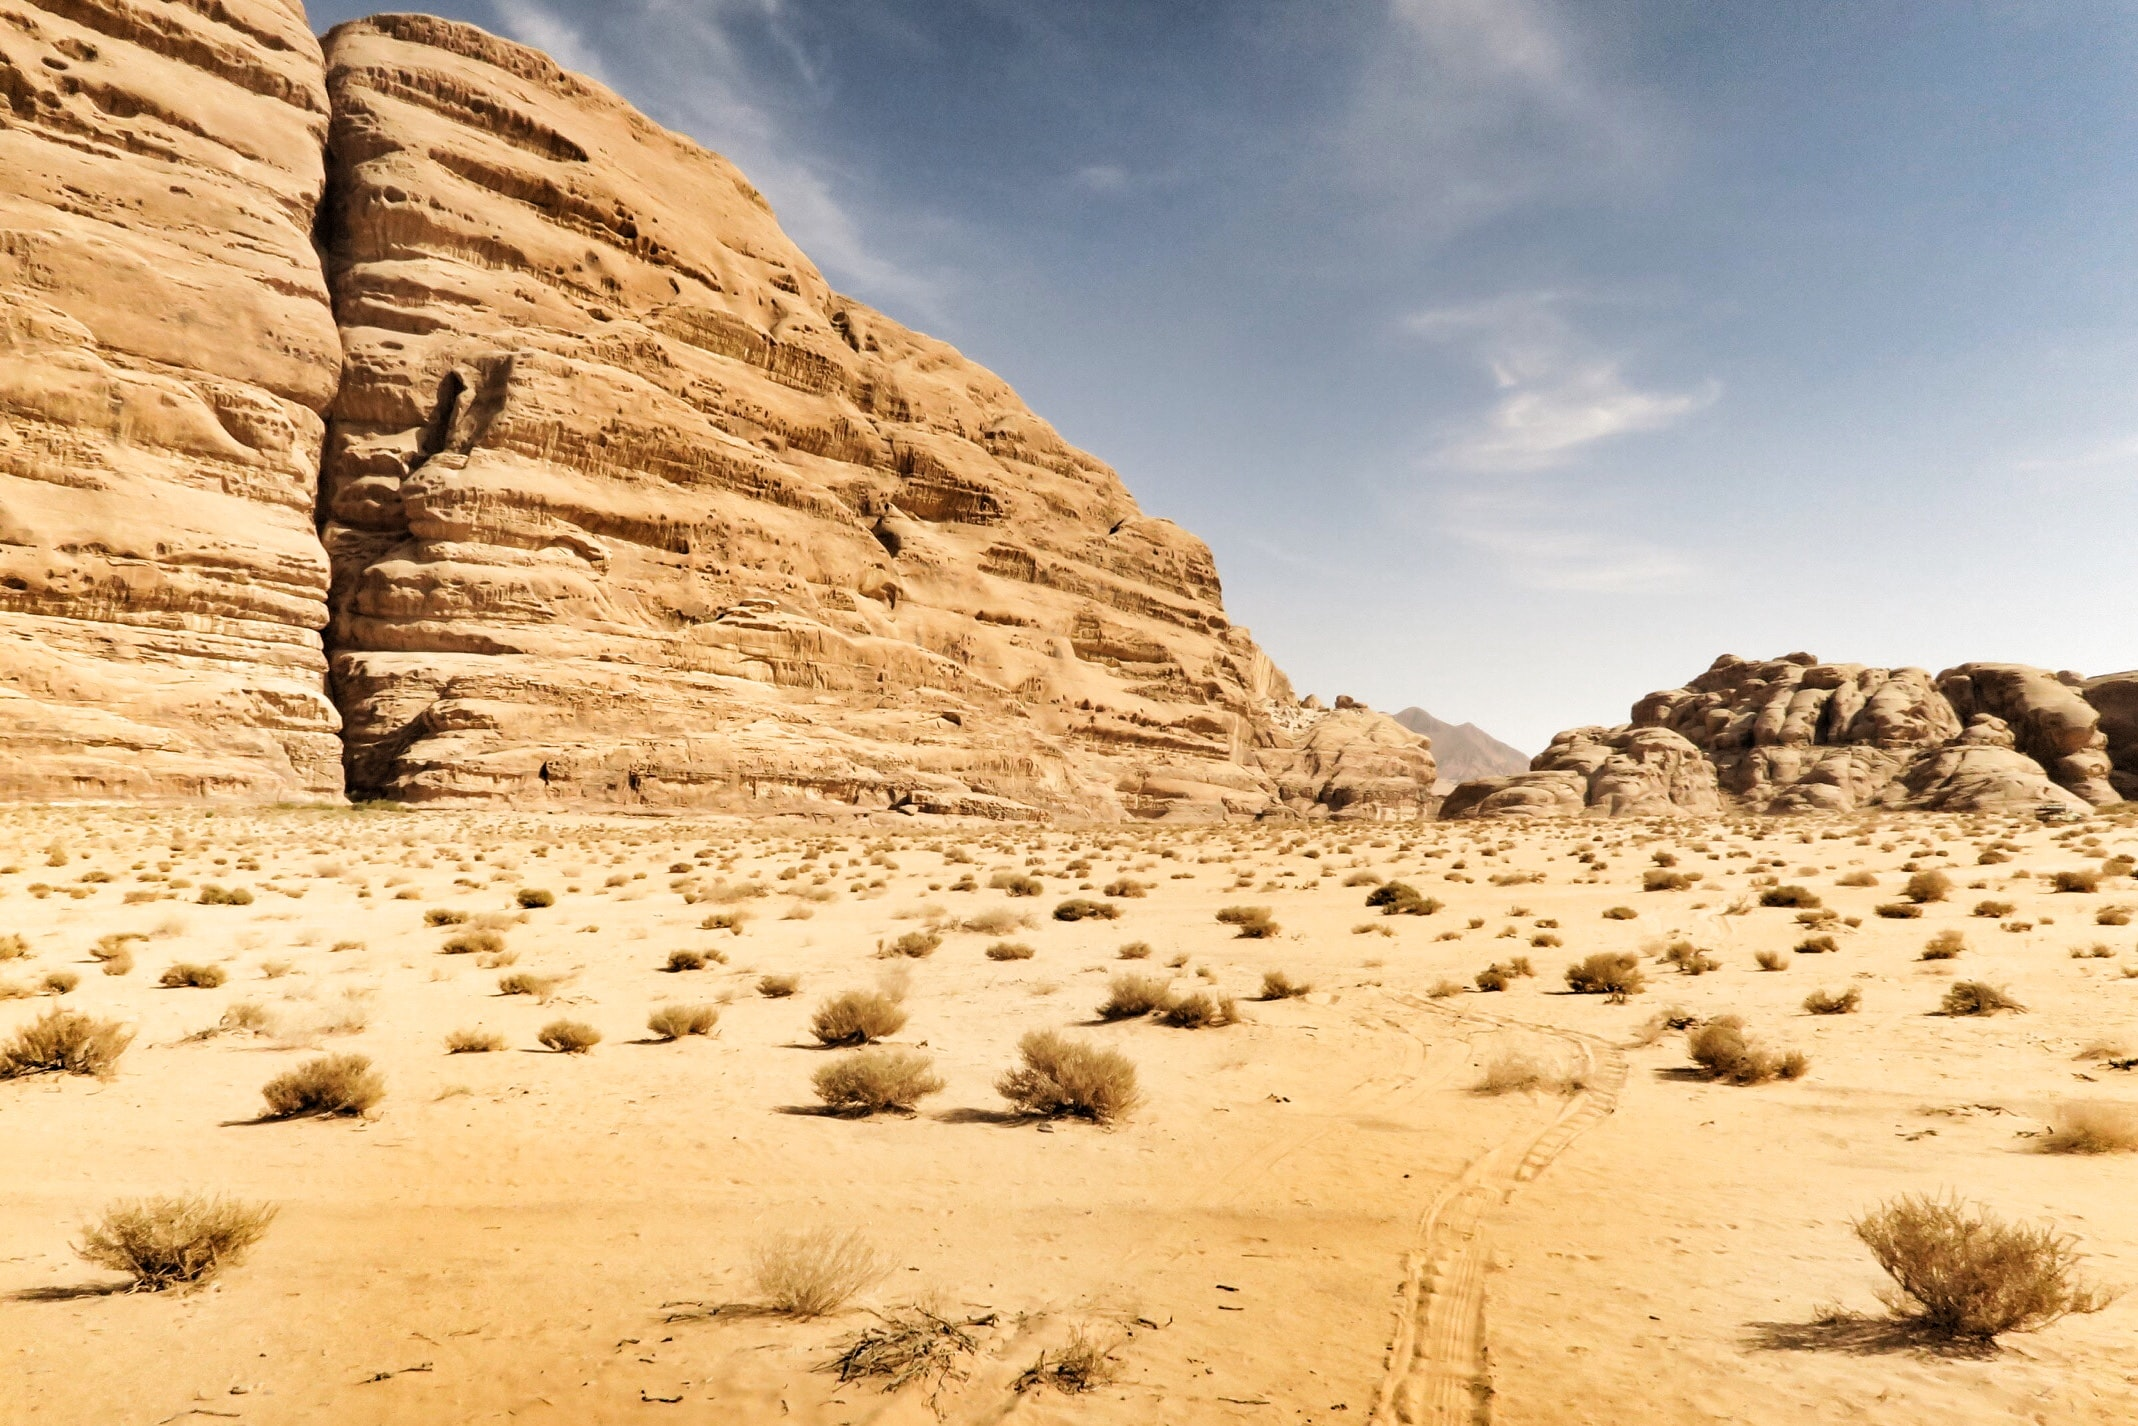 The Desert, where Cain would serve his life sentence